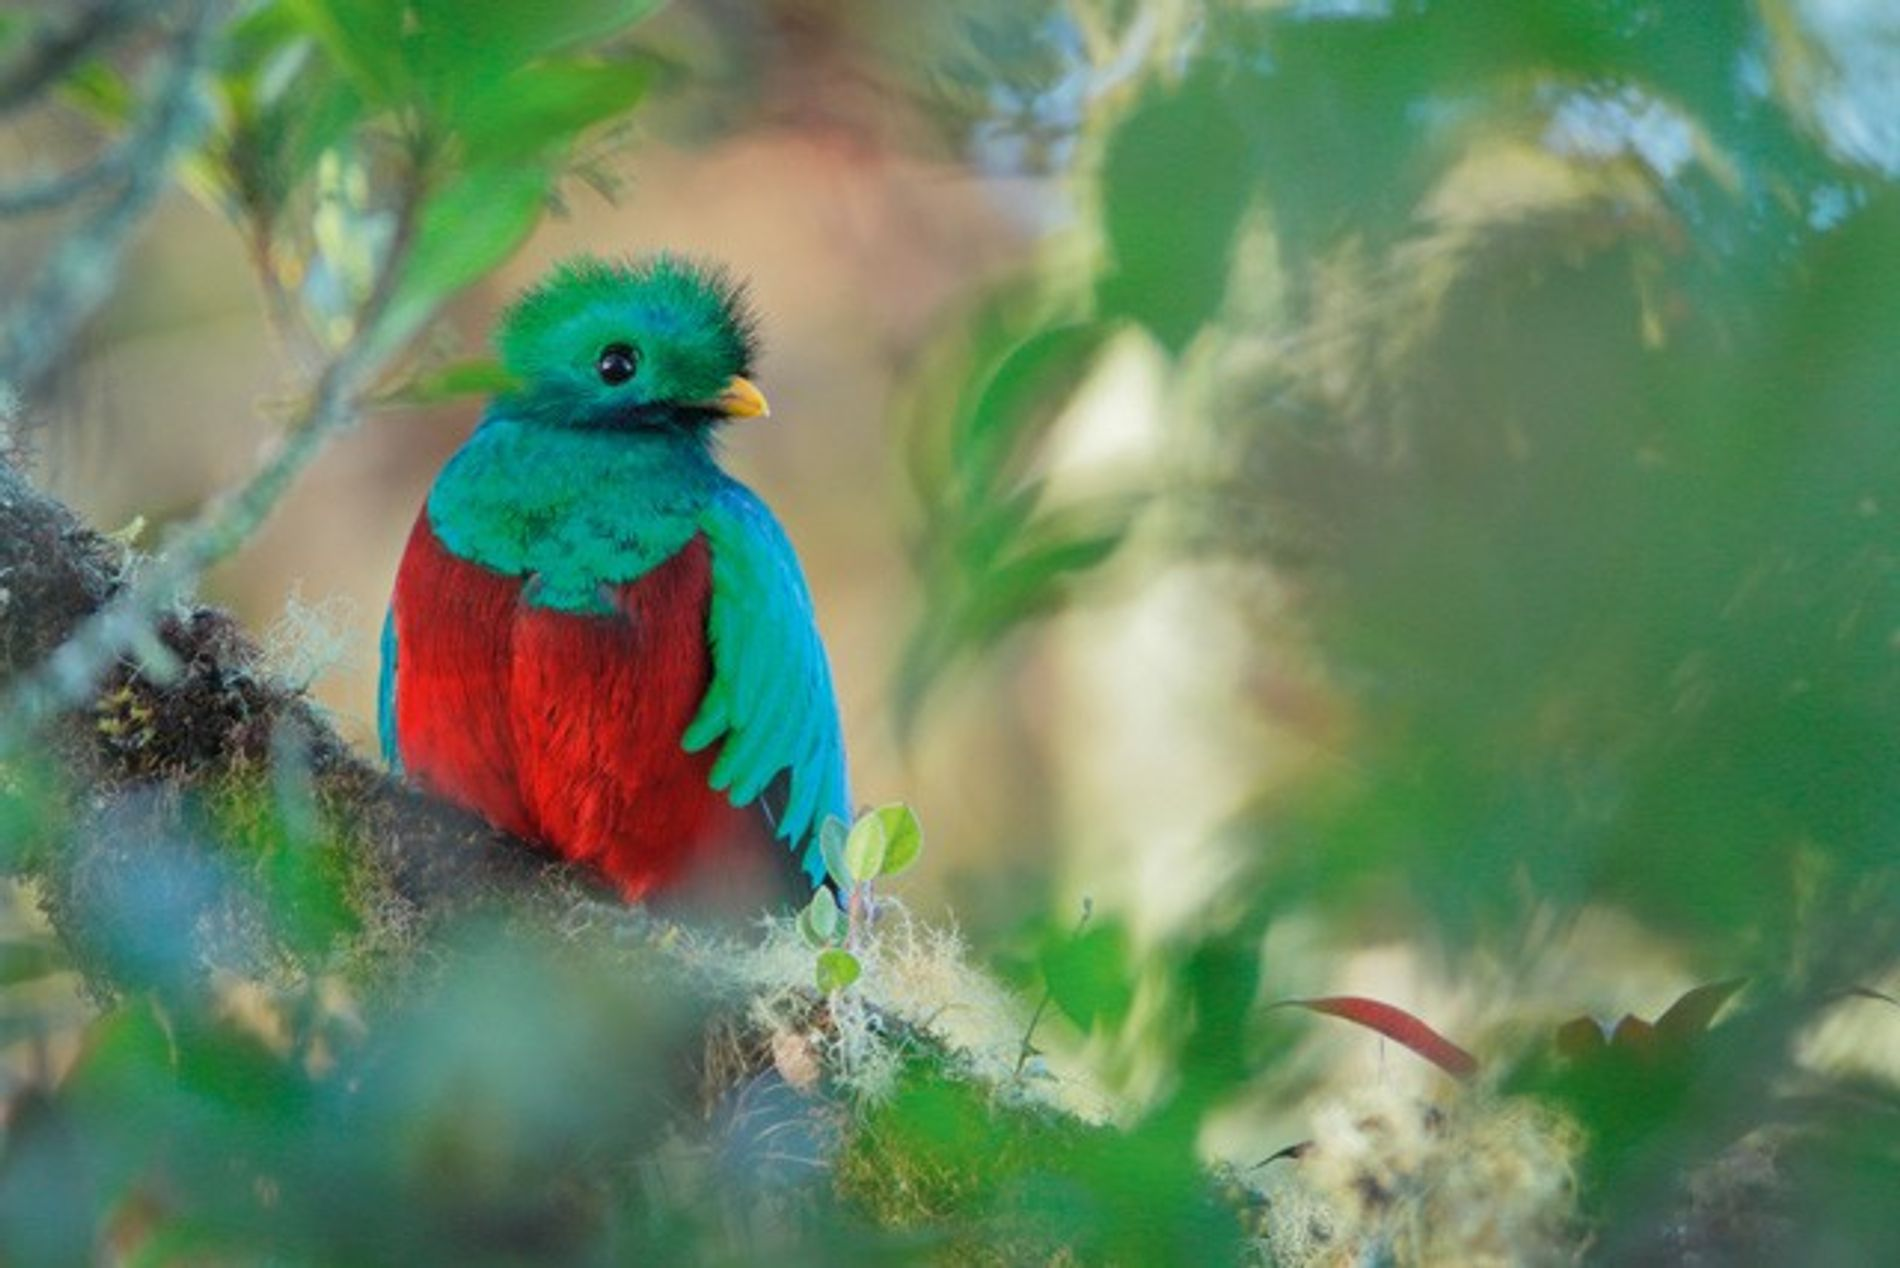 Costa Rica: In search of the quetzal